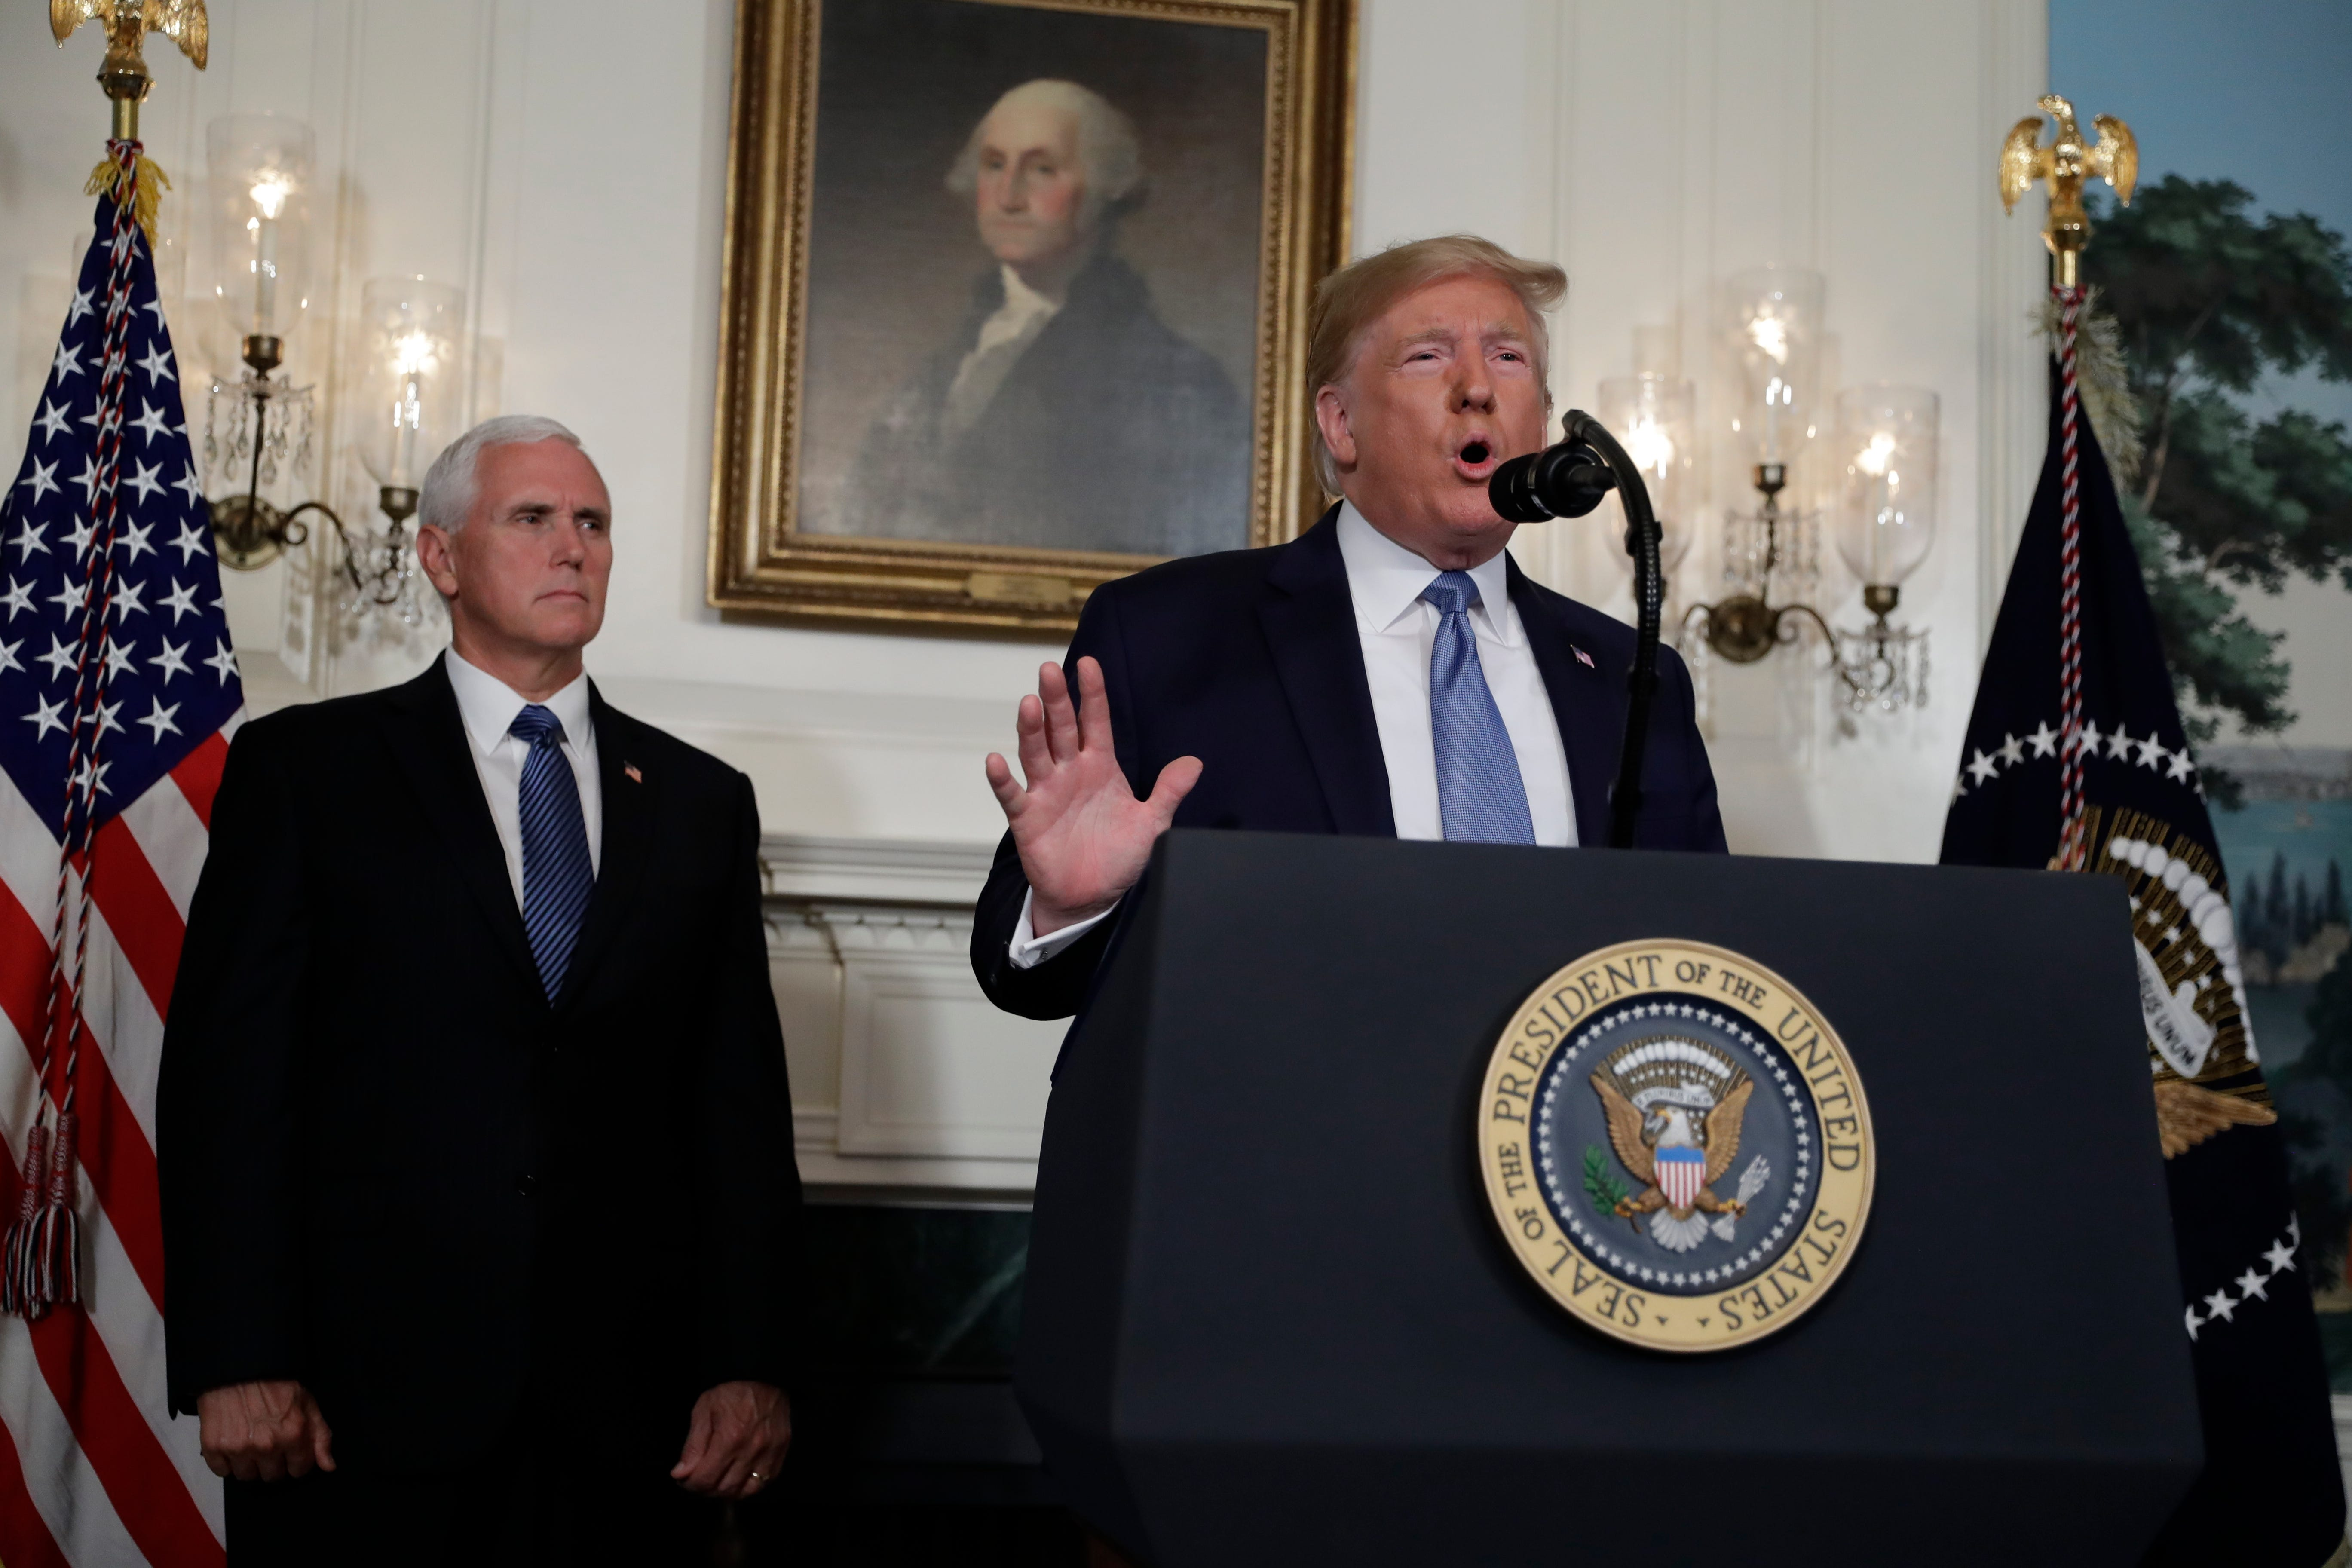 President Donald Trump speaks Monday, Aug. 5, 2019, about the mass shootings in El Paso and Dayton, Ohio, at the White House.